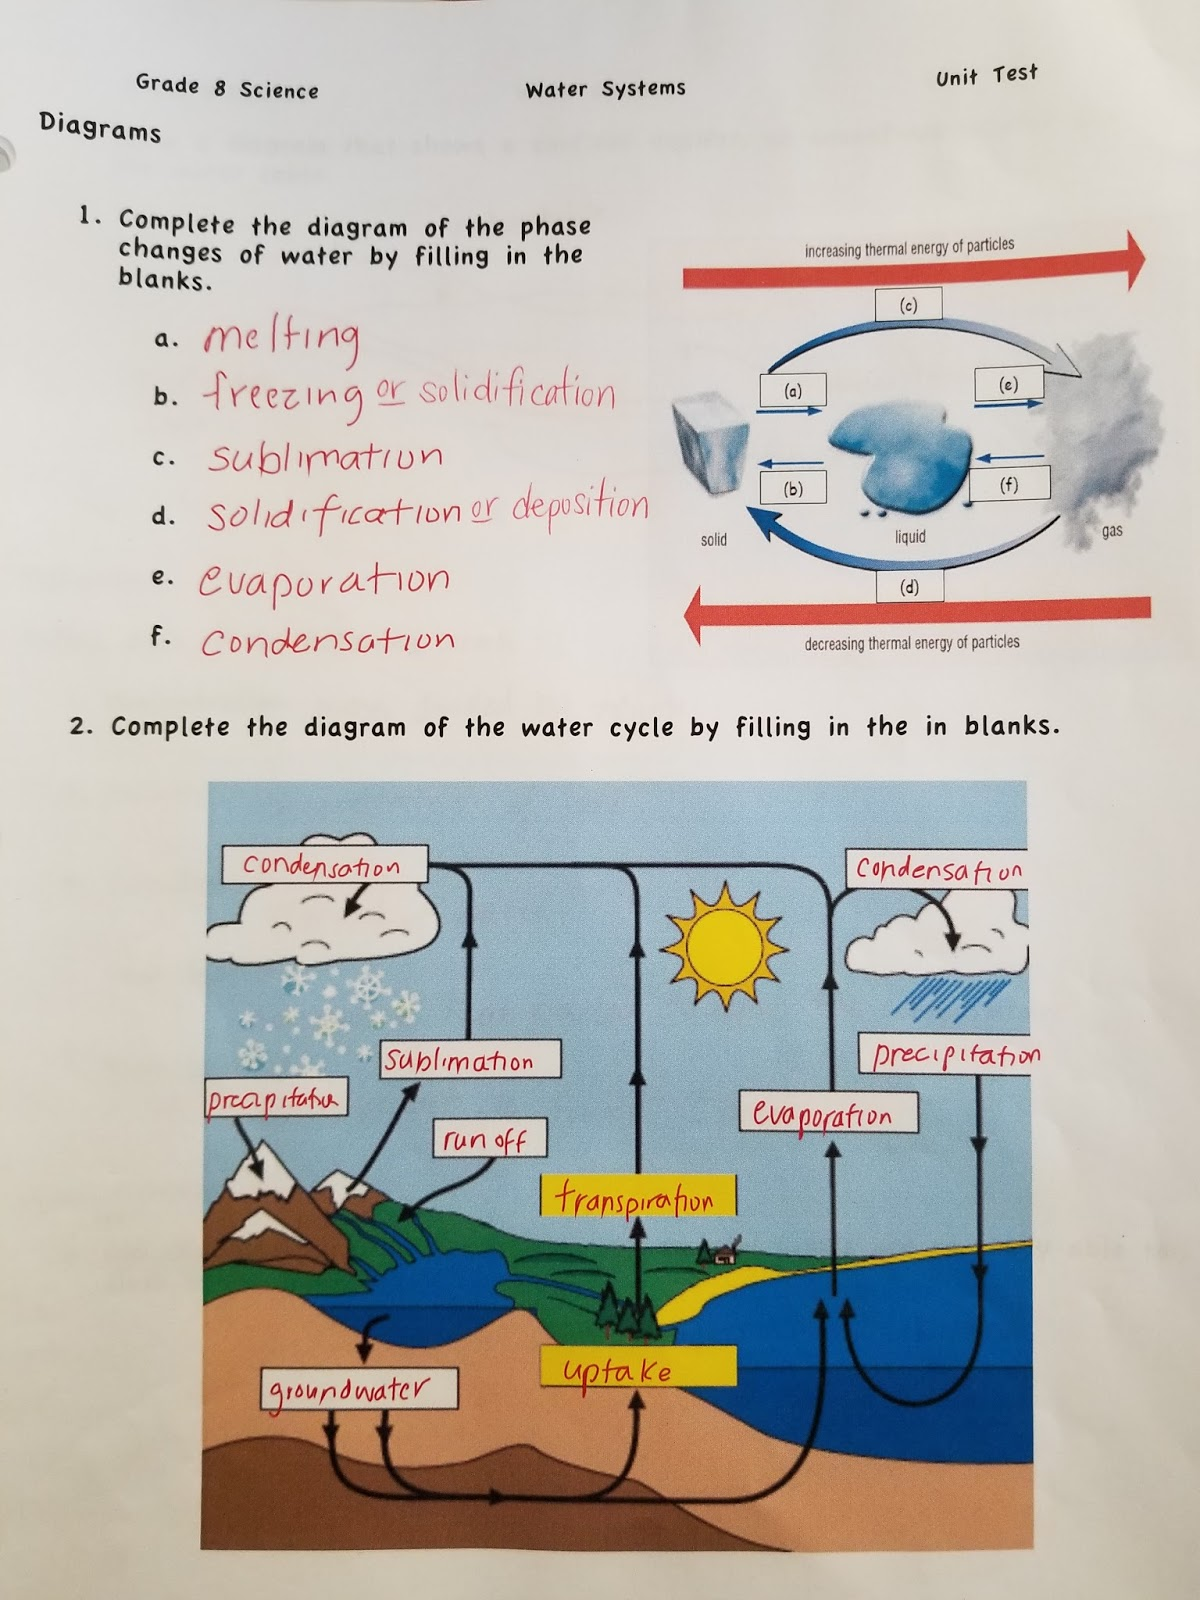 grade 8 science quiz on water systems on thursday may 3rd [ 1200 x 1600 Pixel ]